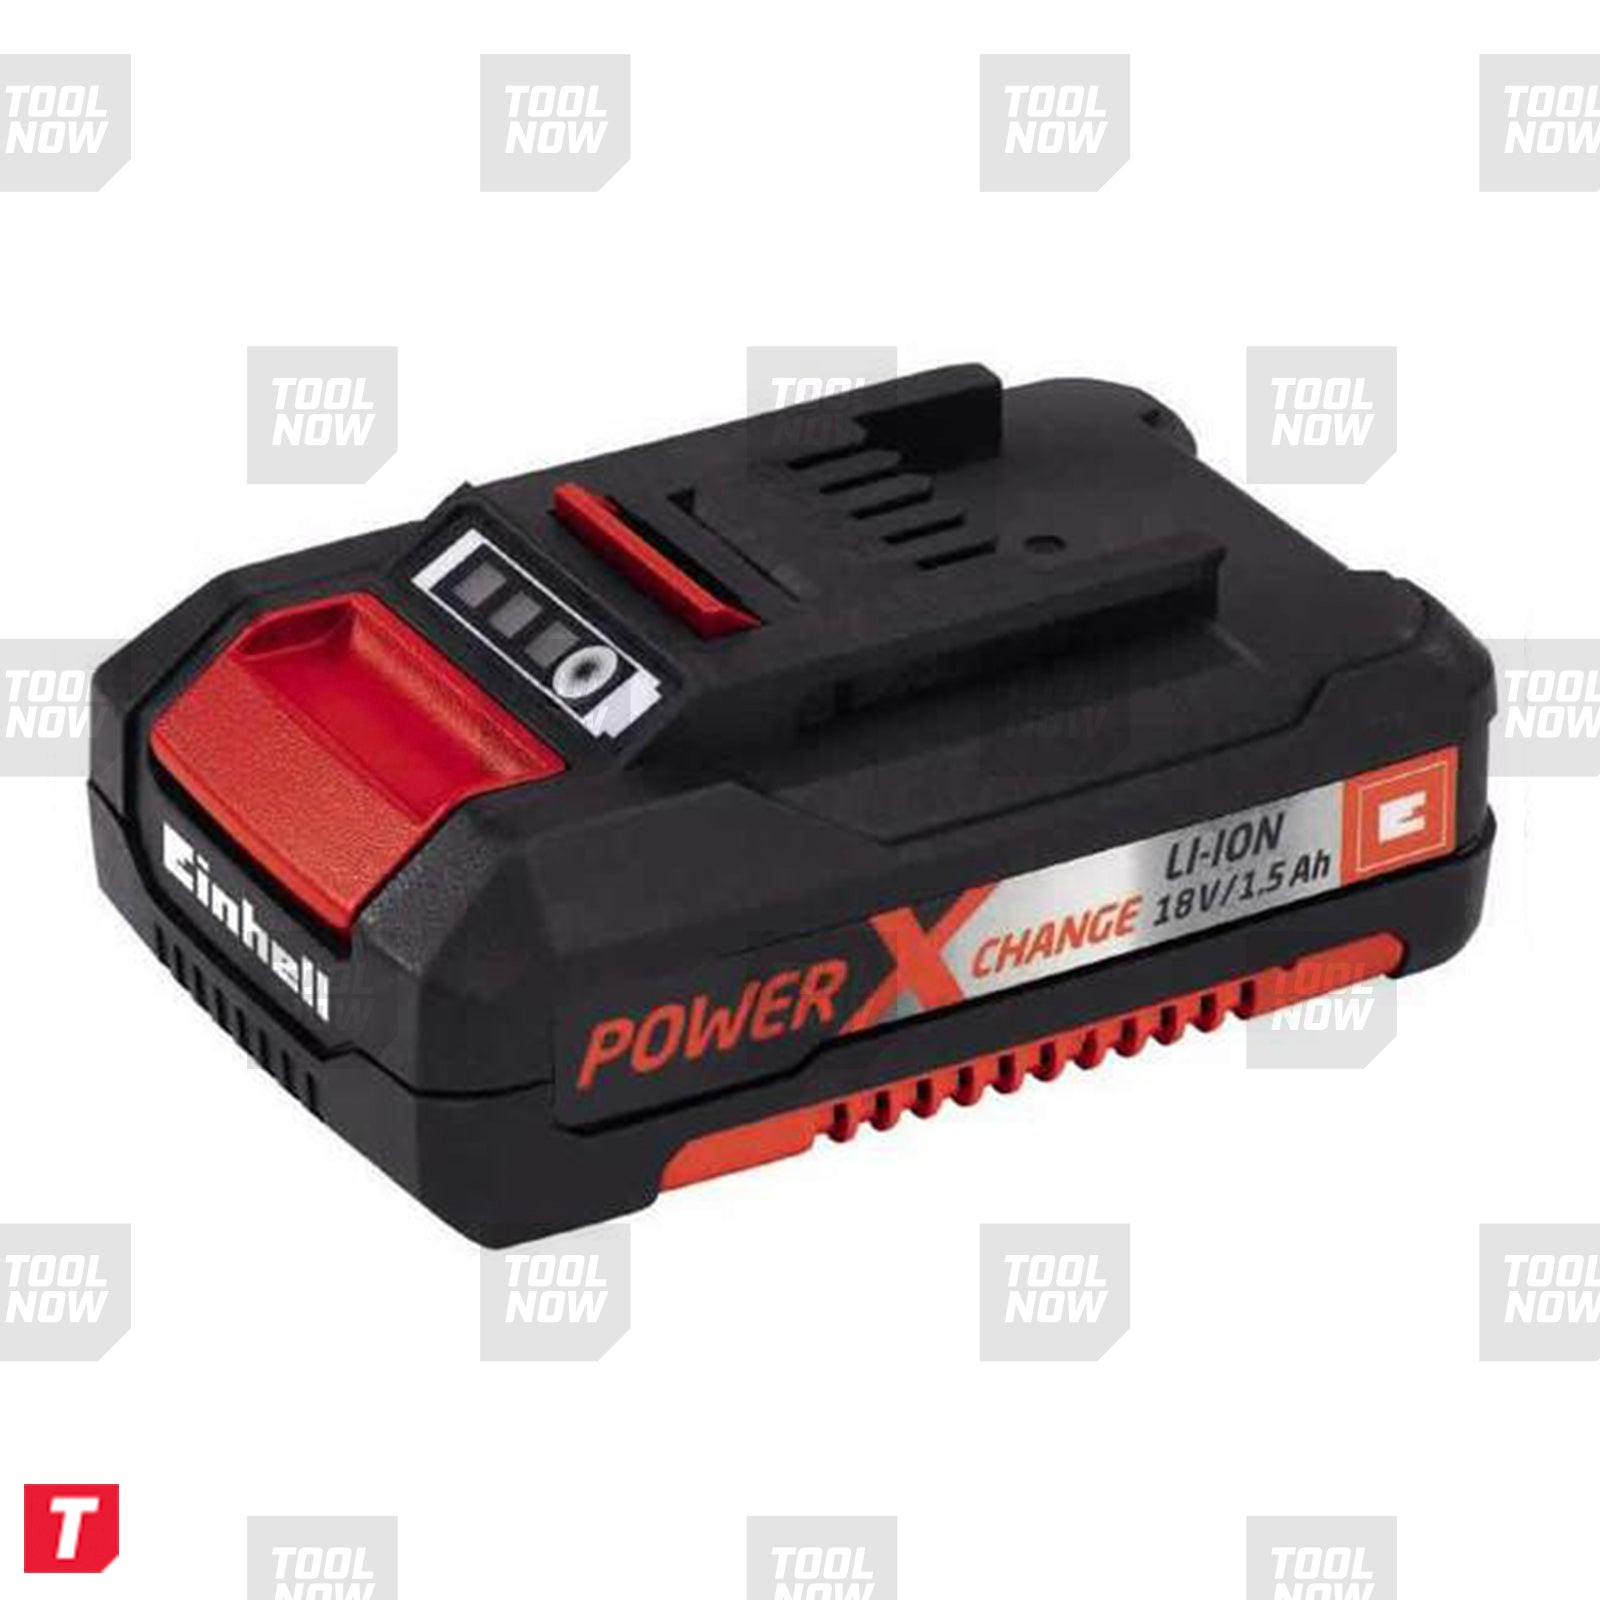 Batería Einhell Power X Change 1,5 Ah